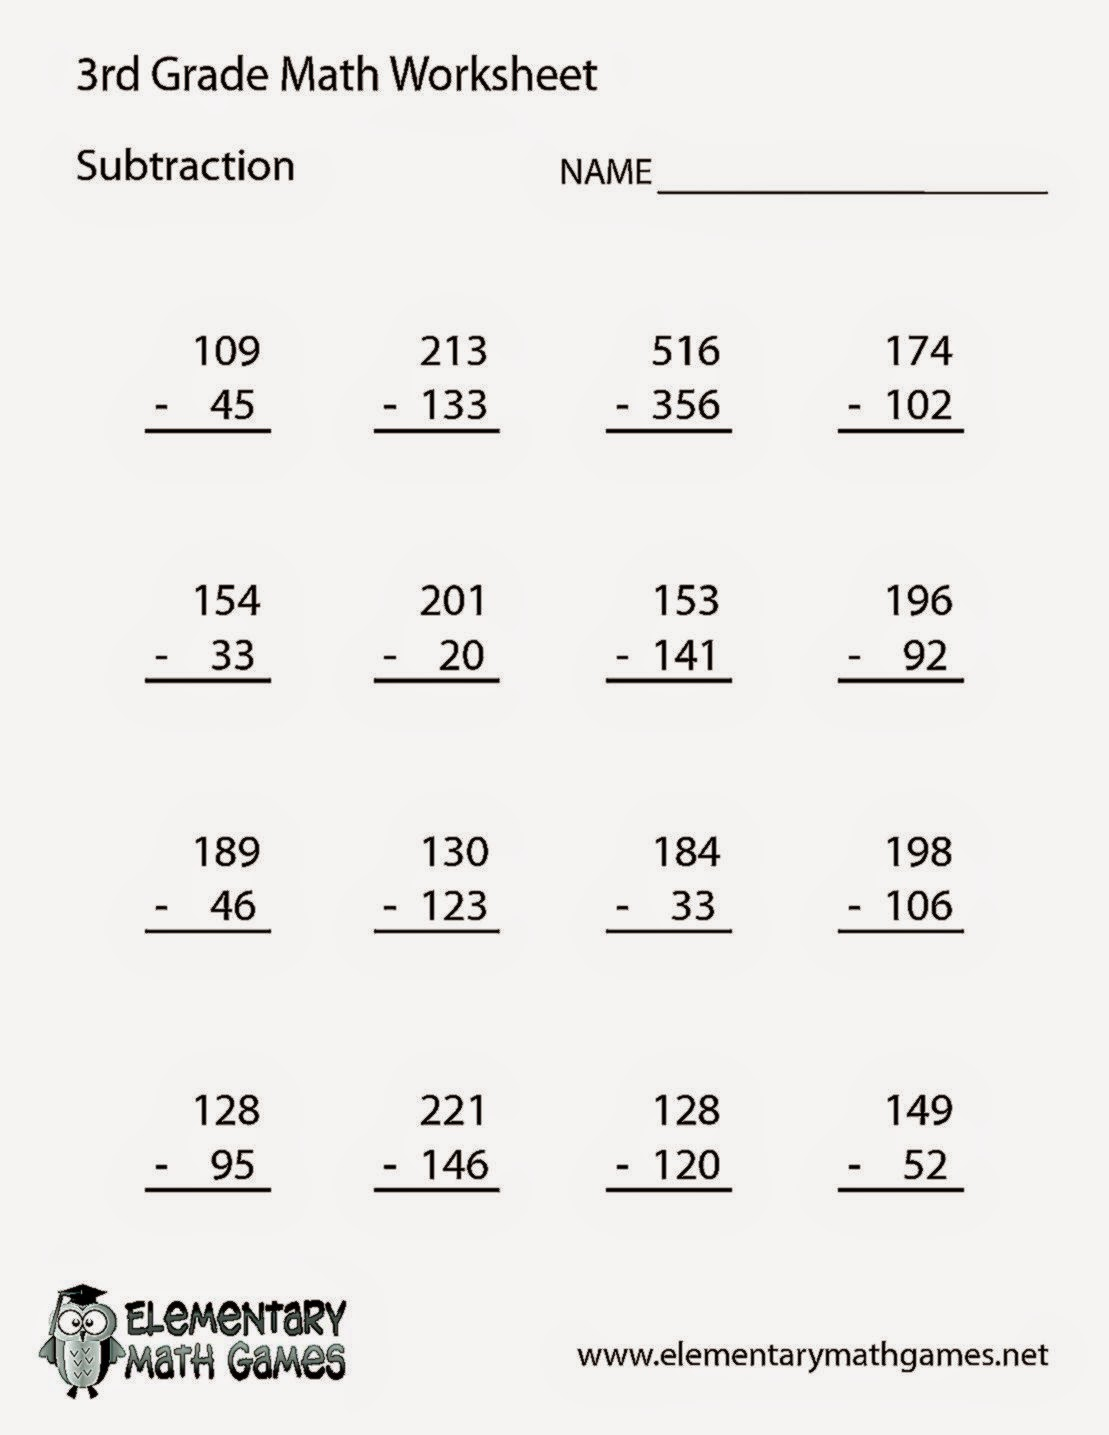 Printables Multiplication For 3rd Grade Worksheets free printable coloring math worksheets for 3rd grade pages 7th worksheet games